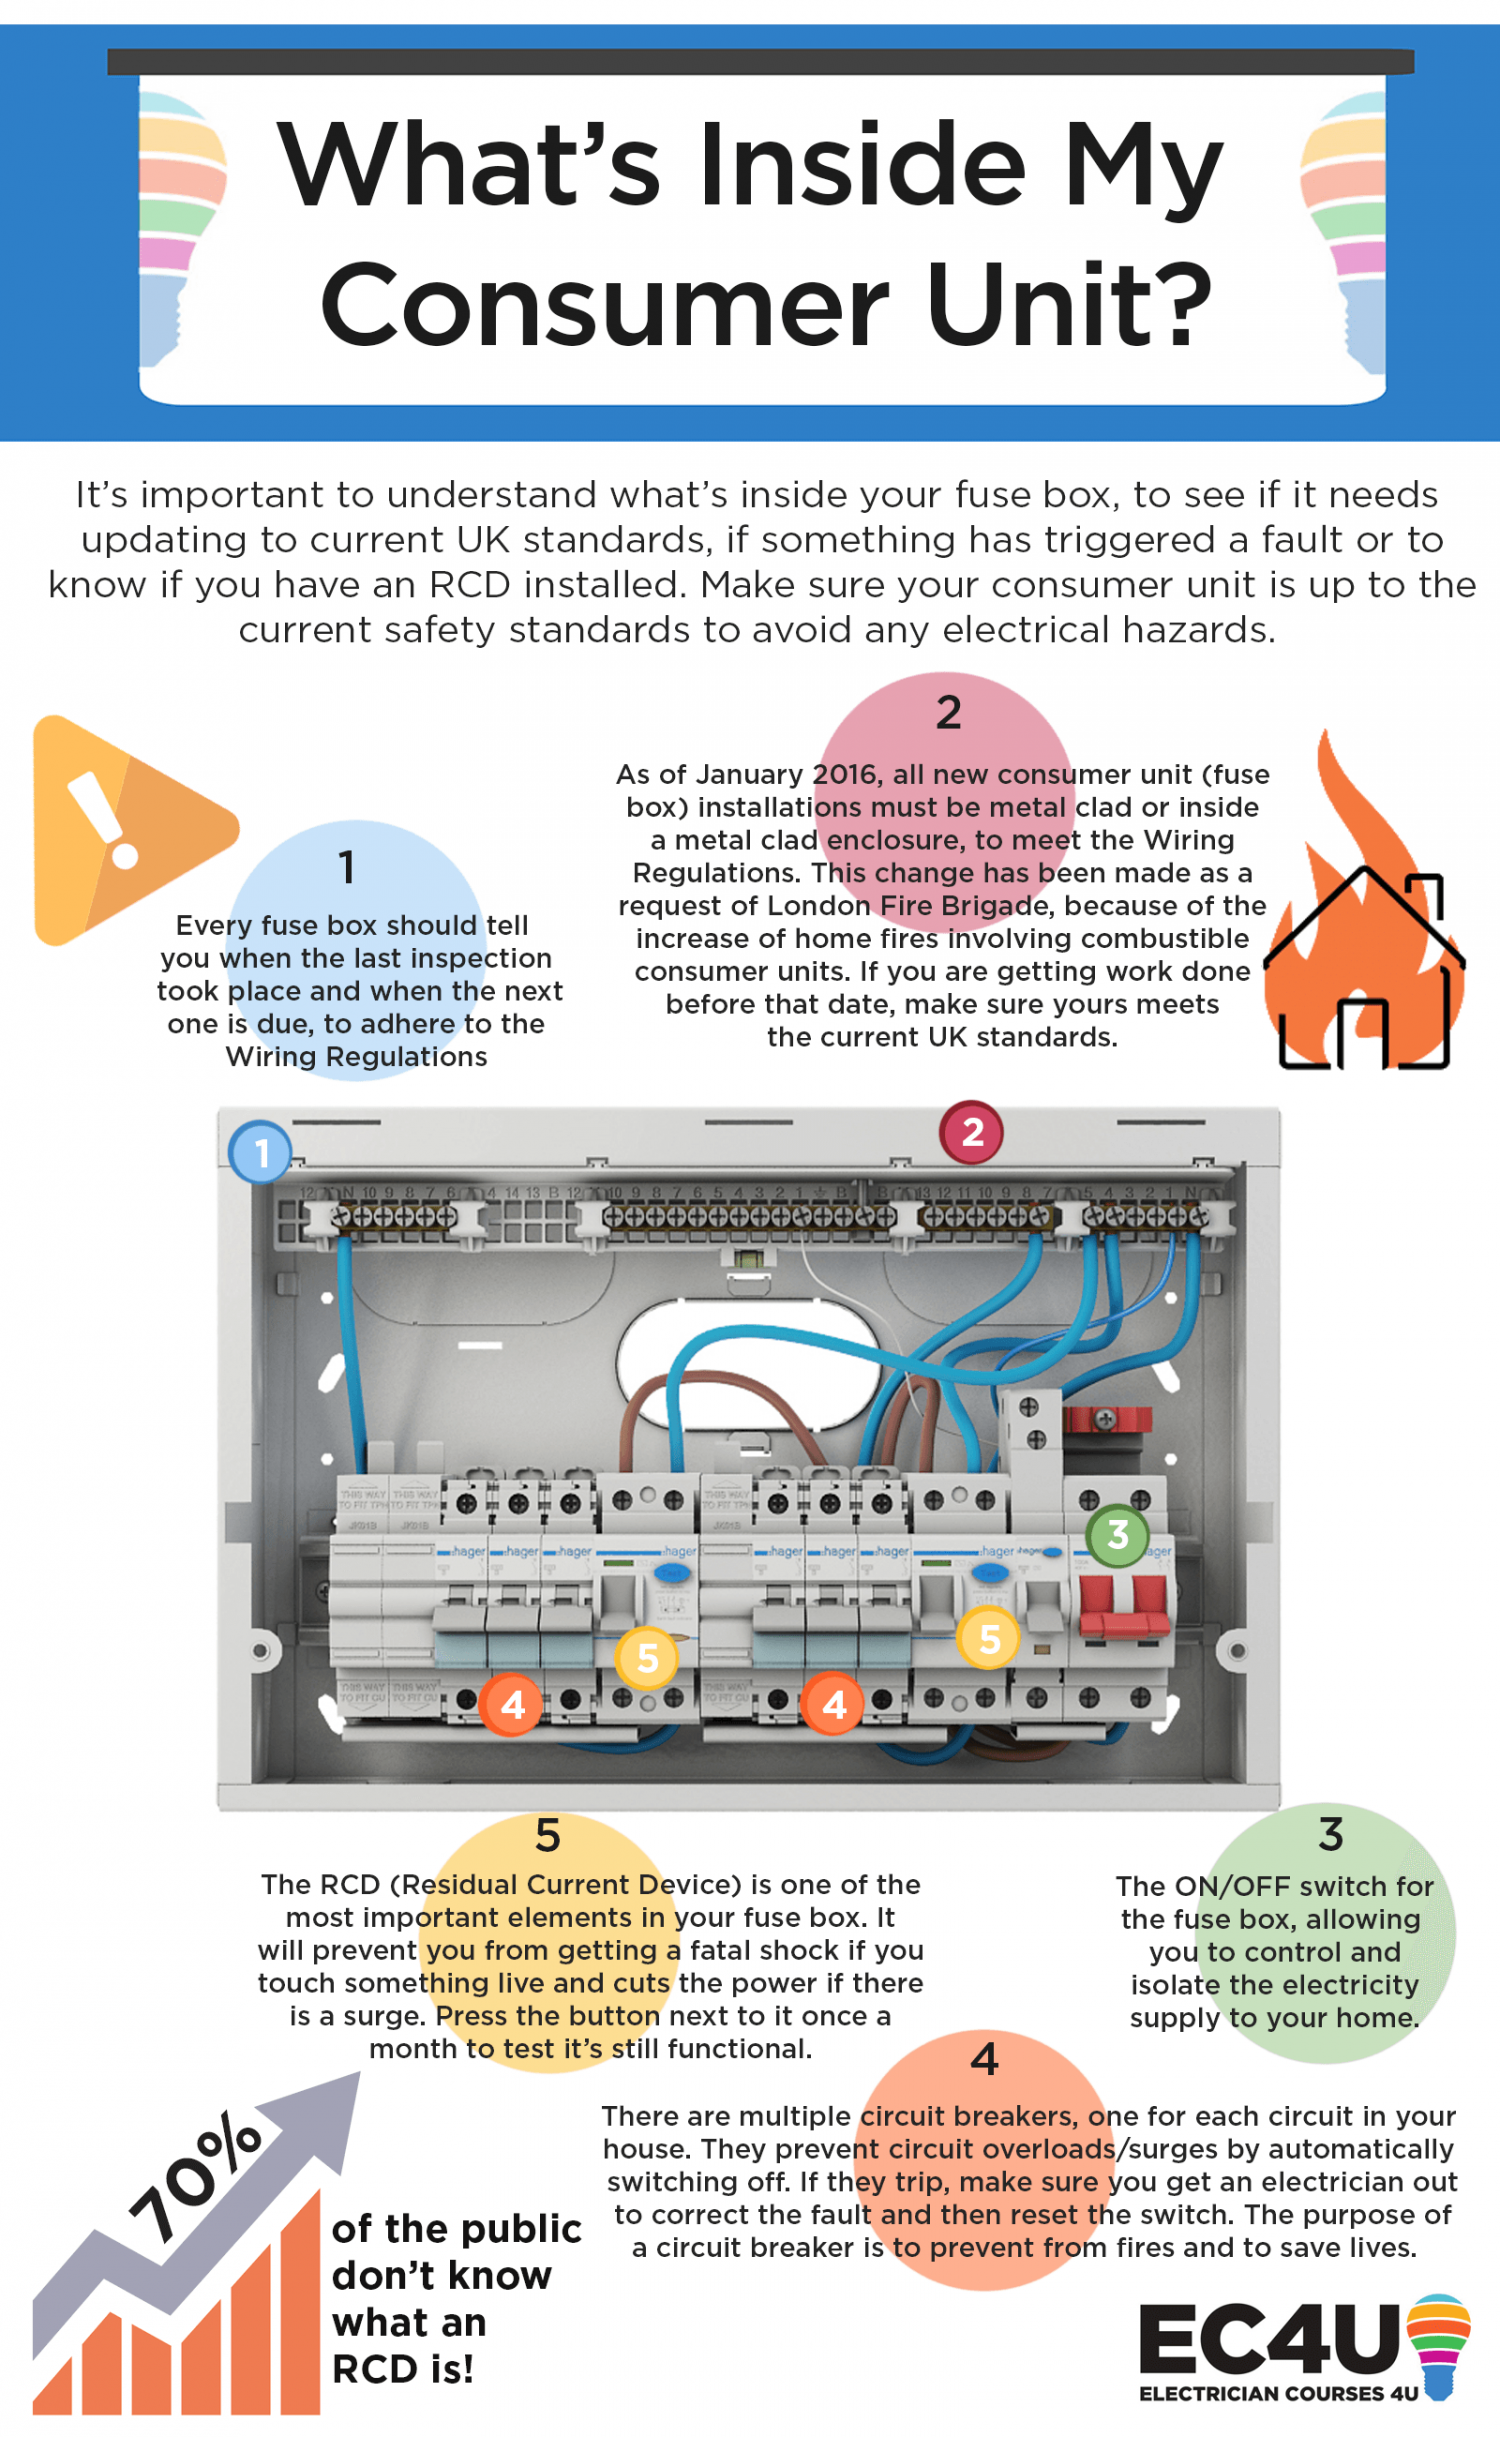 Main Fuse Box Home Whats Inside Your Infographic